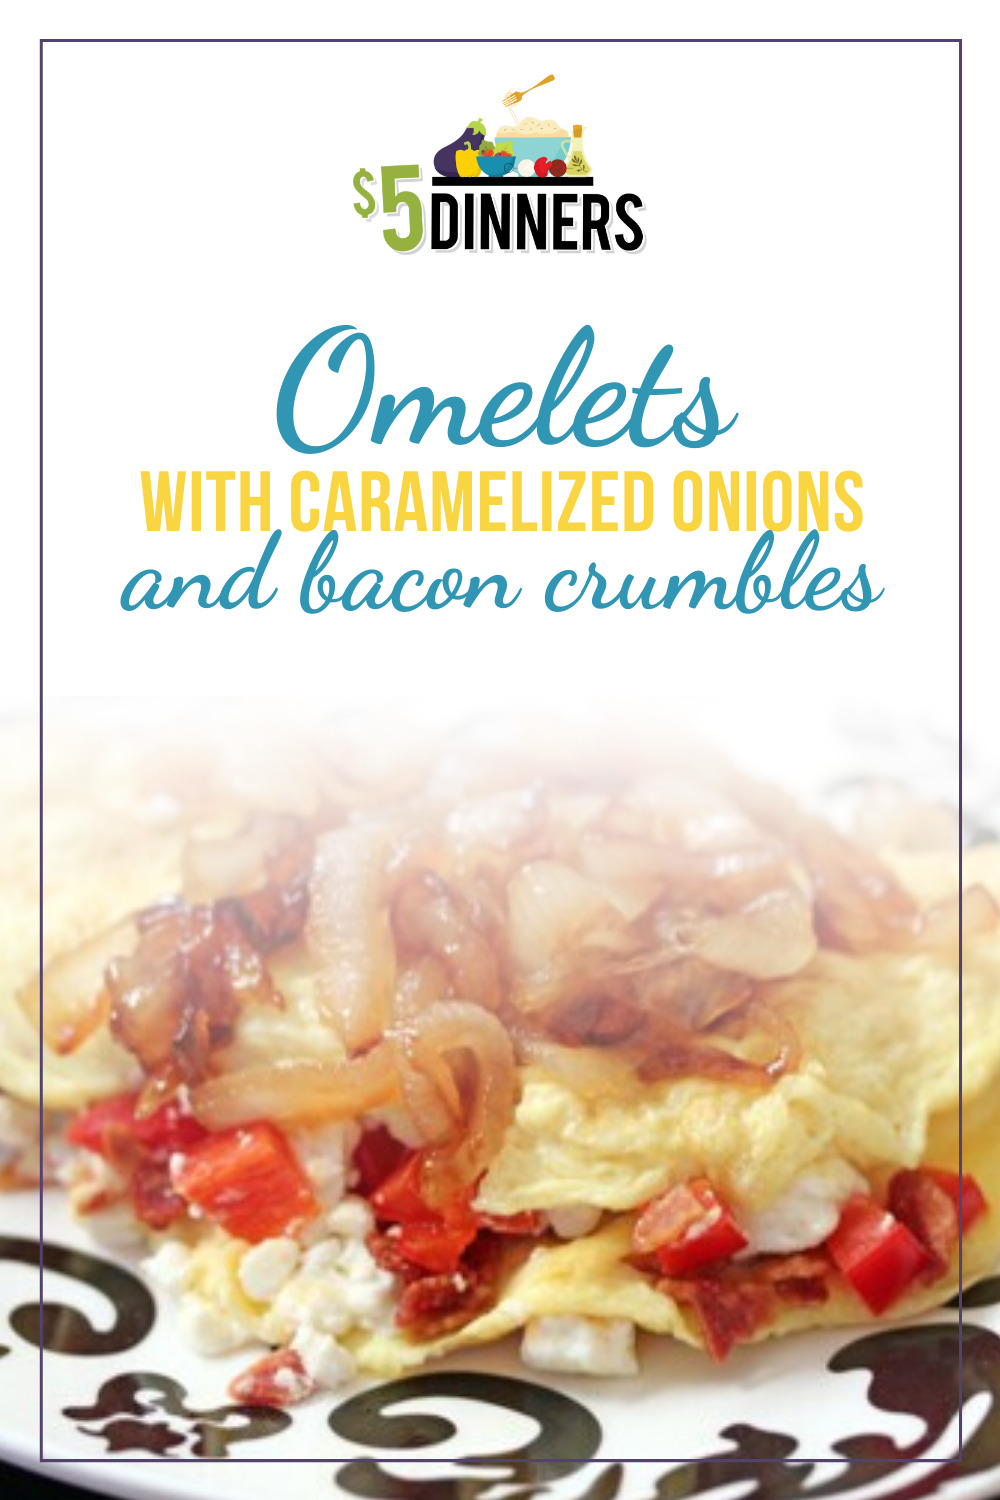 omelets with caramelized onions and bacon crumbles recipe